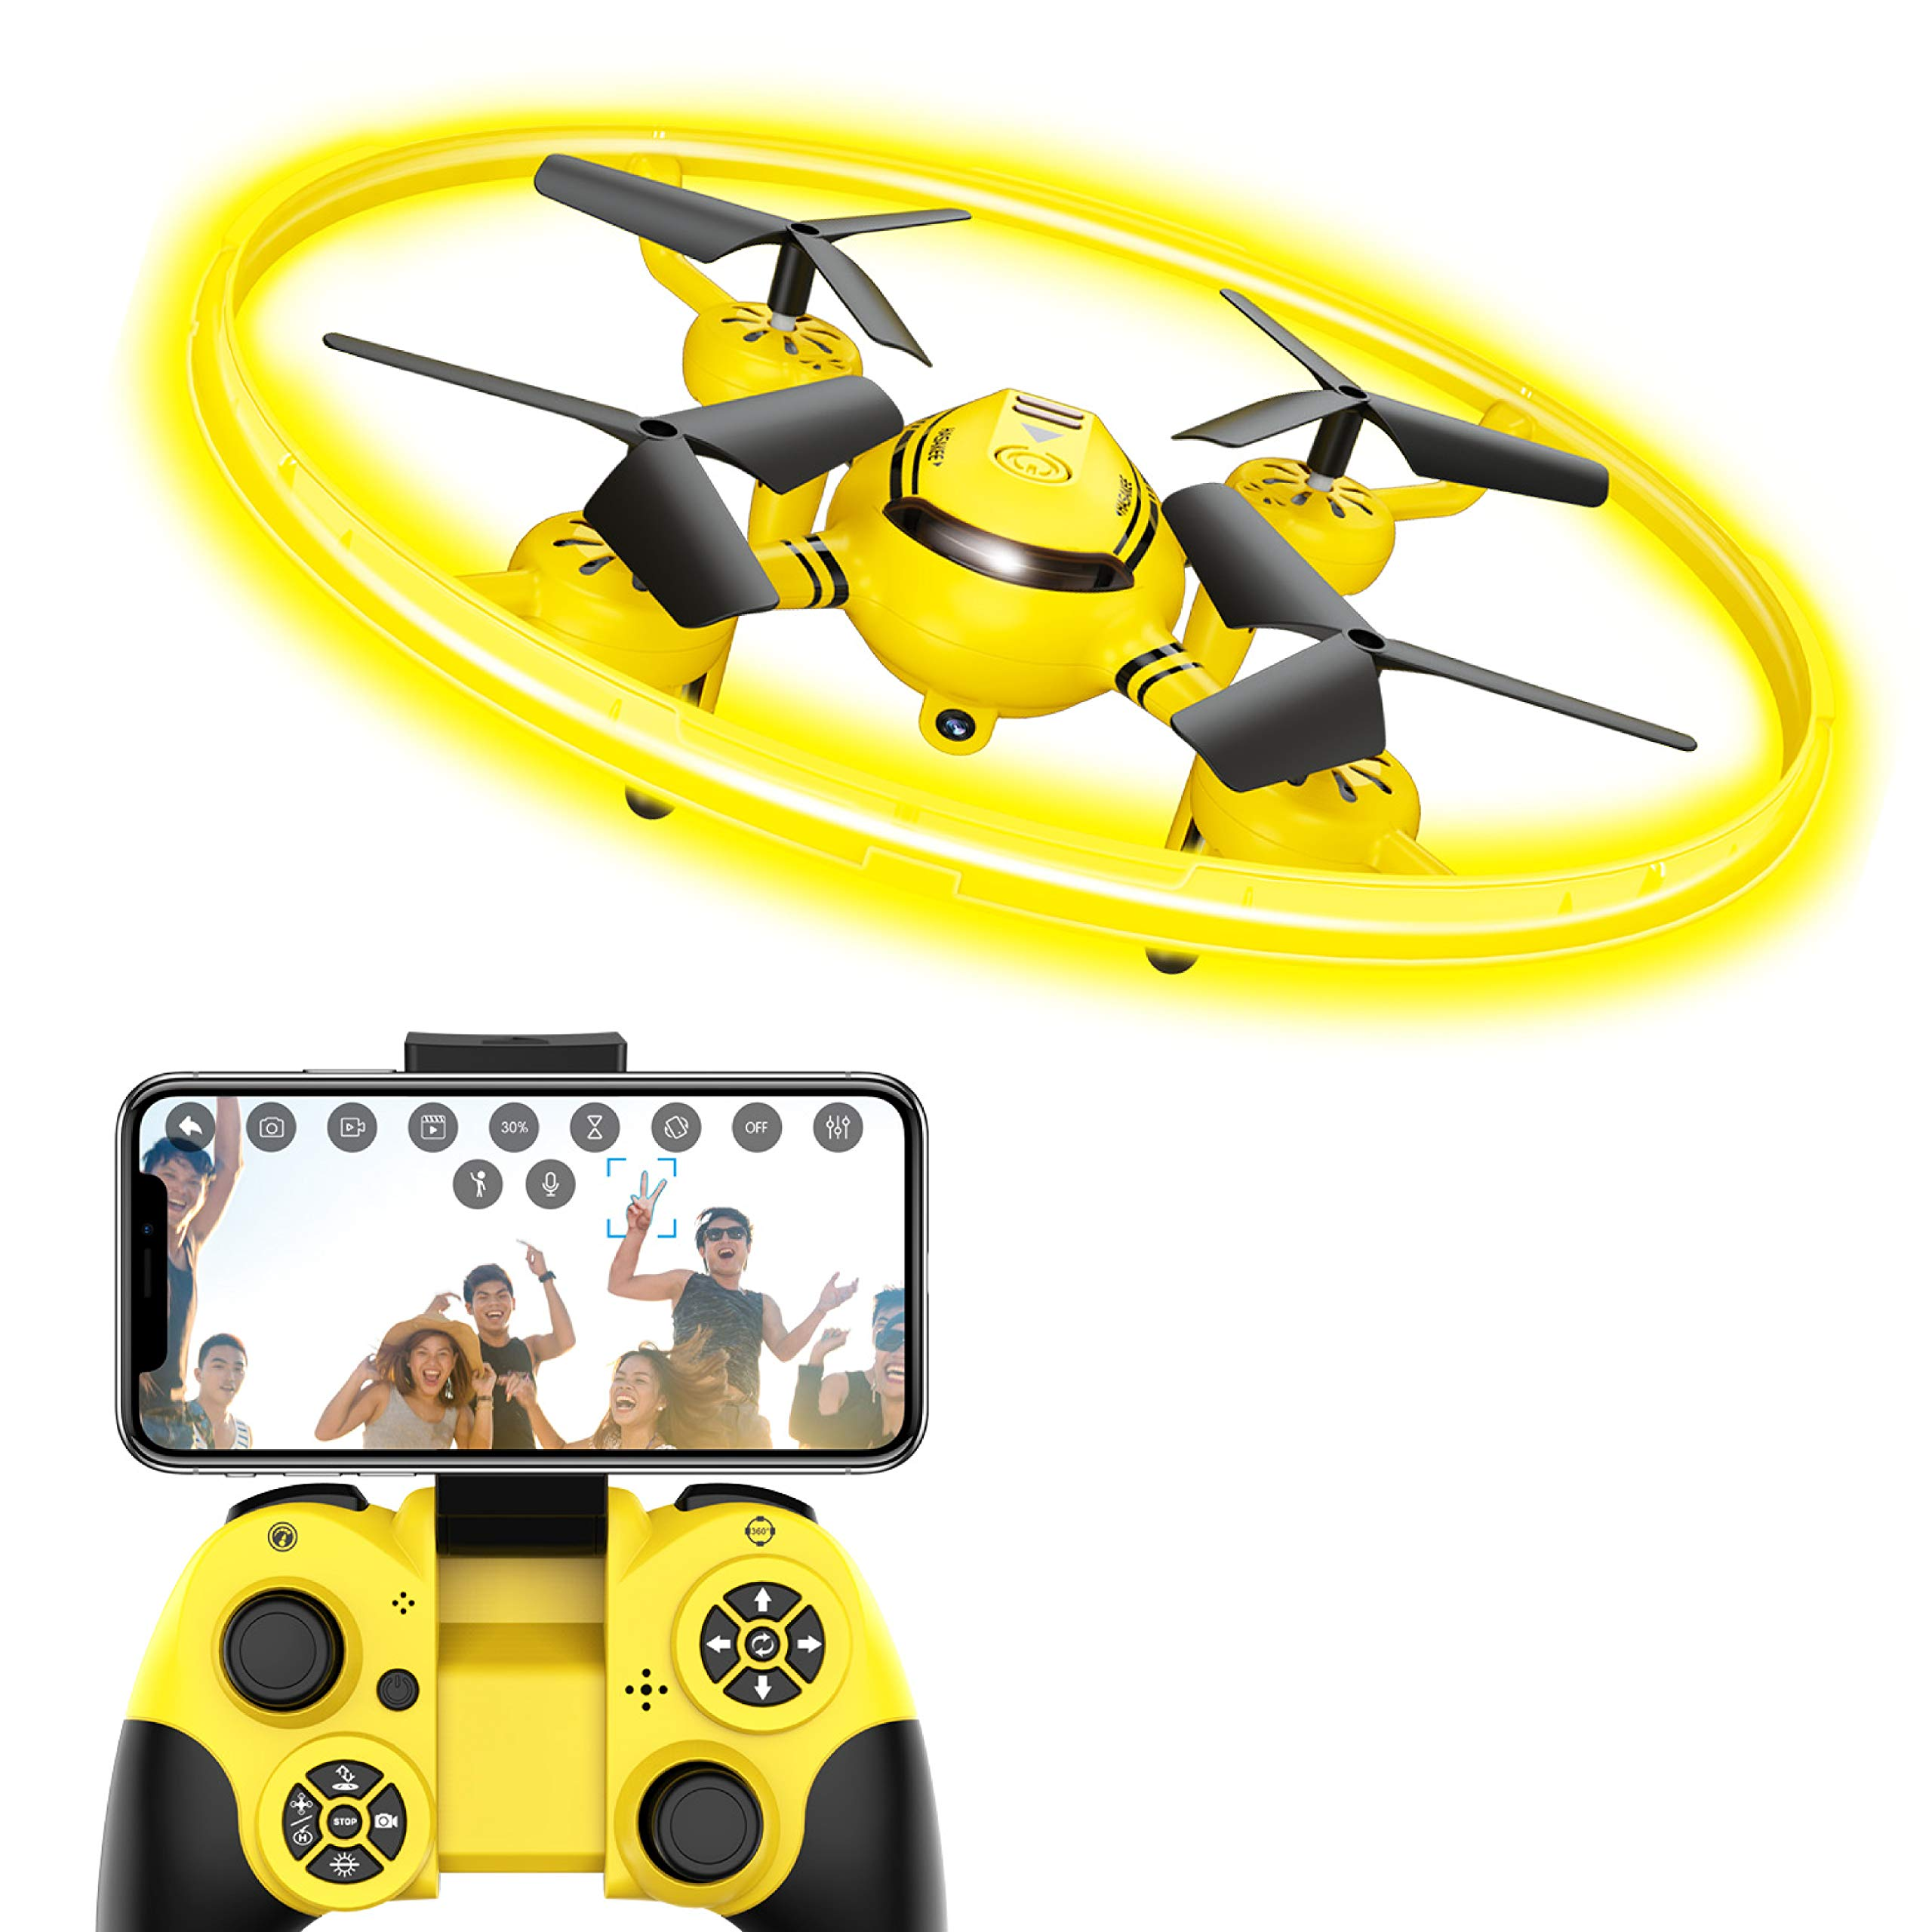 HASAKEE Q8 FPV Drone with HD Camera for Adults,RC Drones for Kids Quadcopter with Altitude Hold Gravity Sensor and Gesture Control,Gift Toy for Boys and Girls by HASAKEE